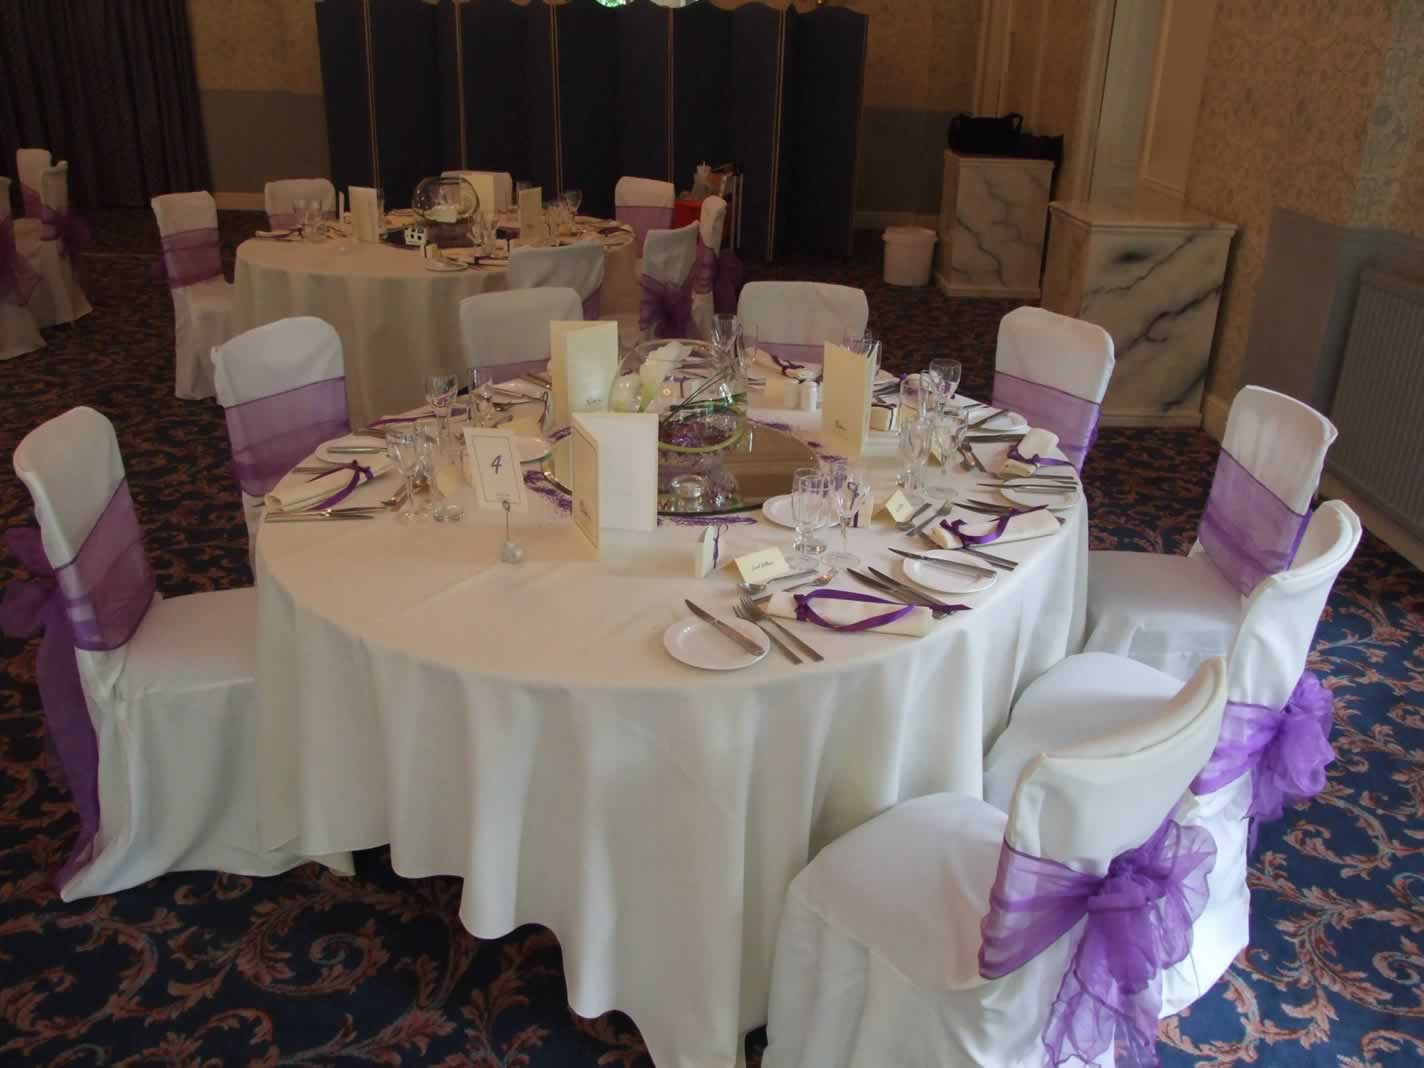 wedding chair covers warrington pottery barn oversized anywhere the uk company venue dresser